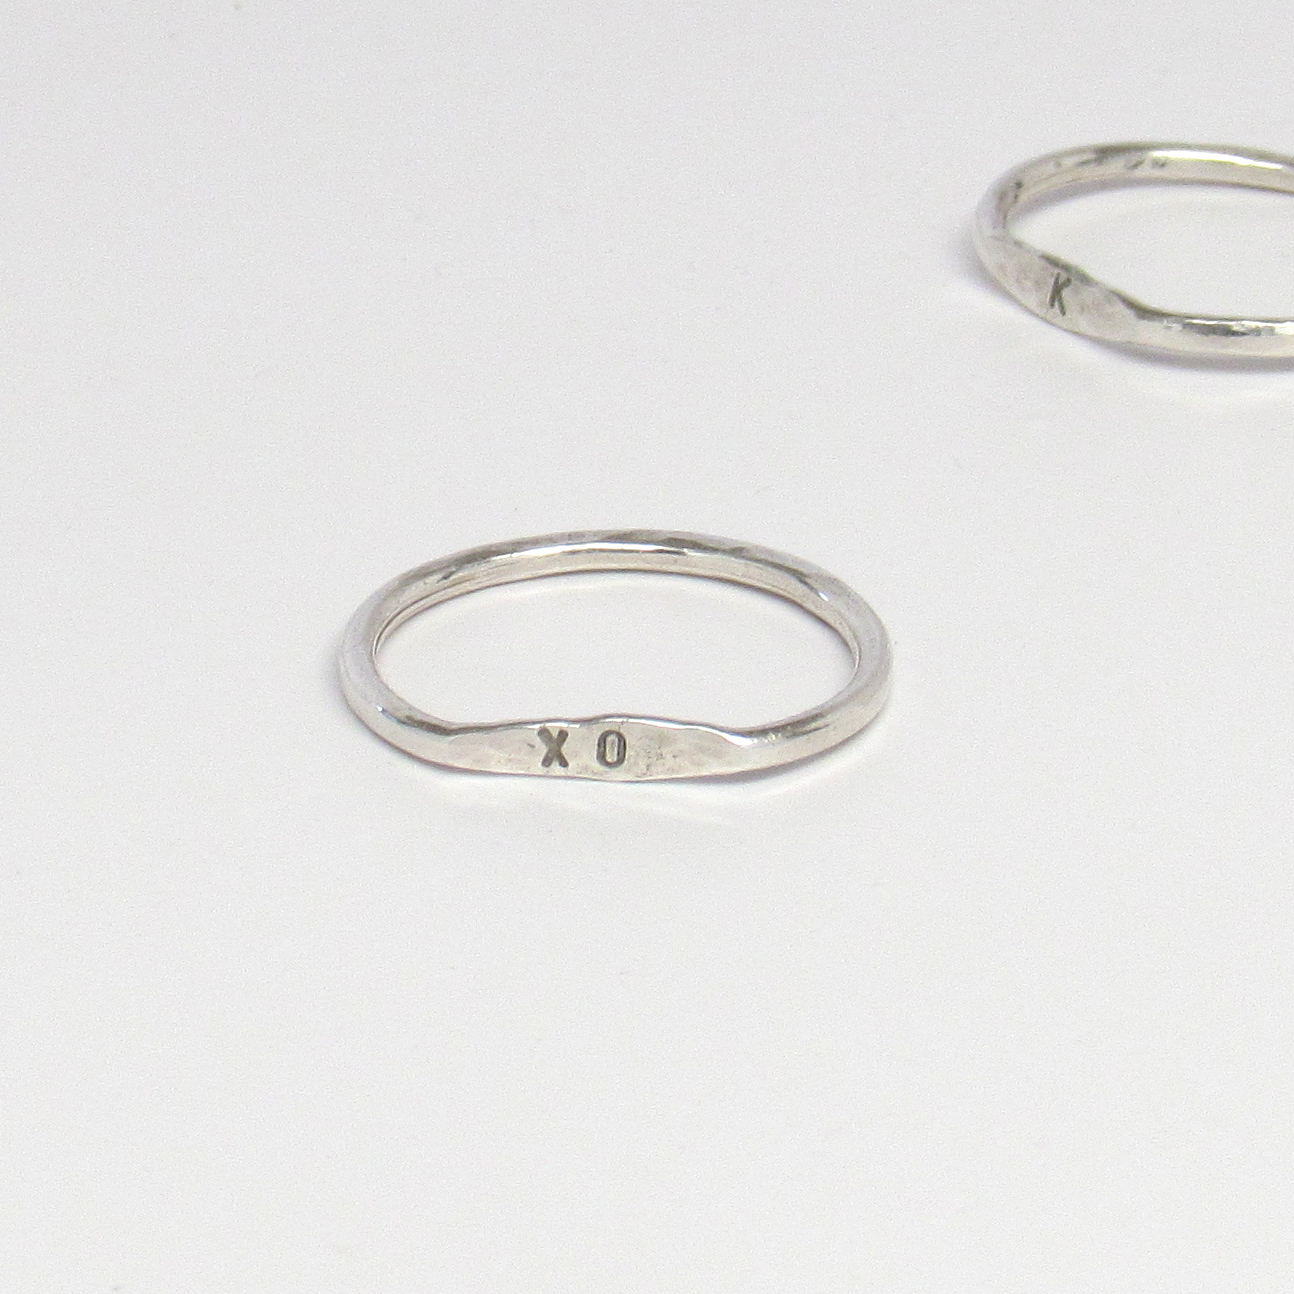 Personalized hammered rings